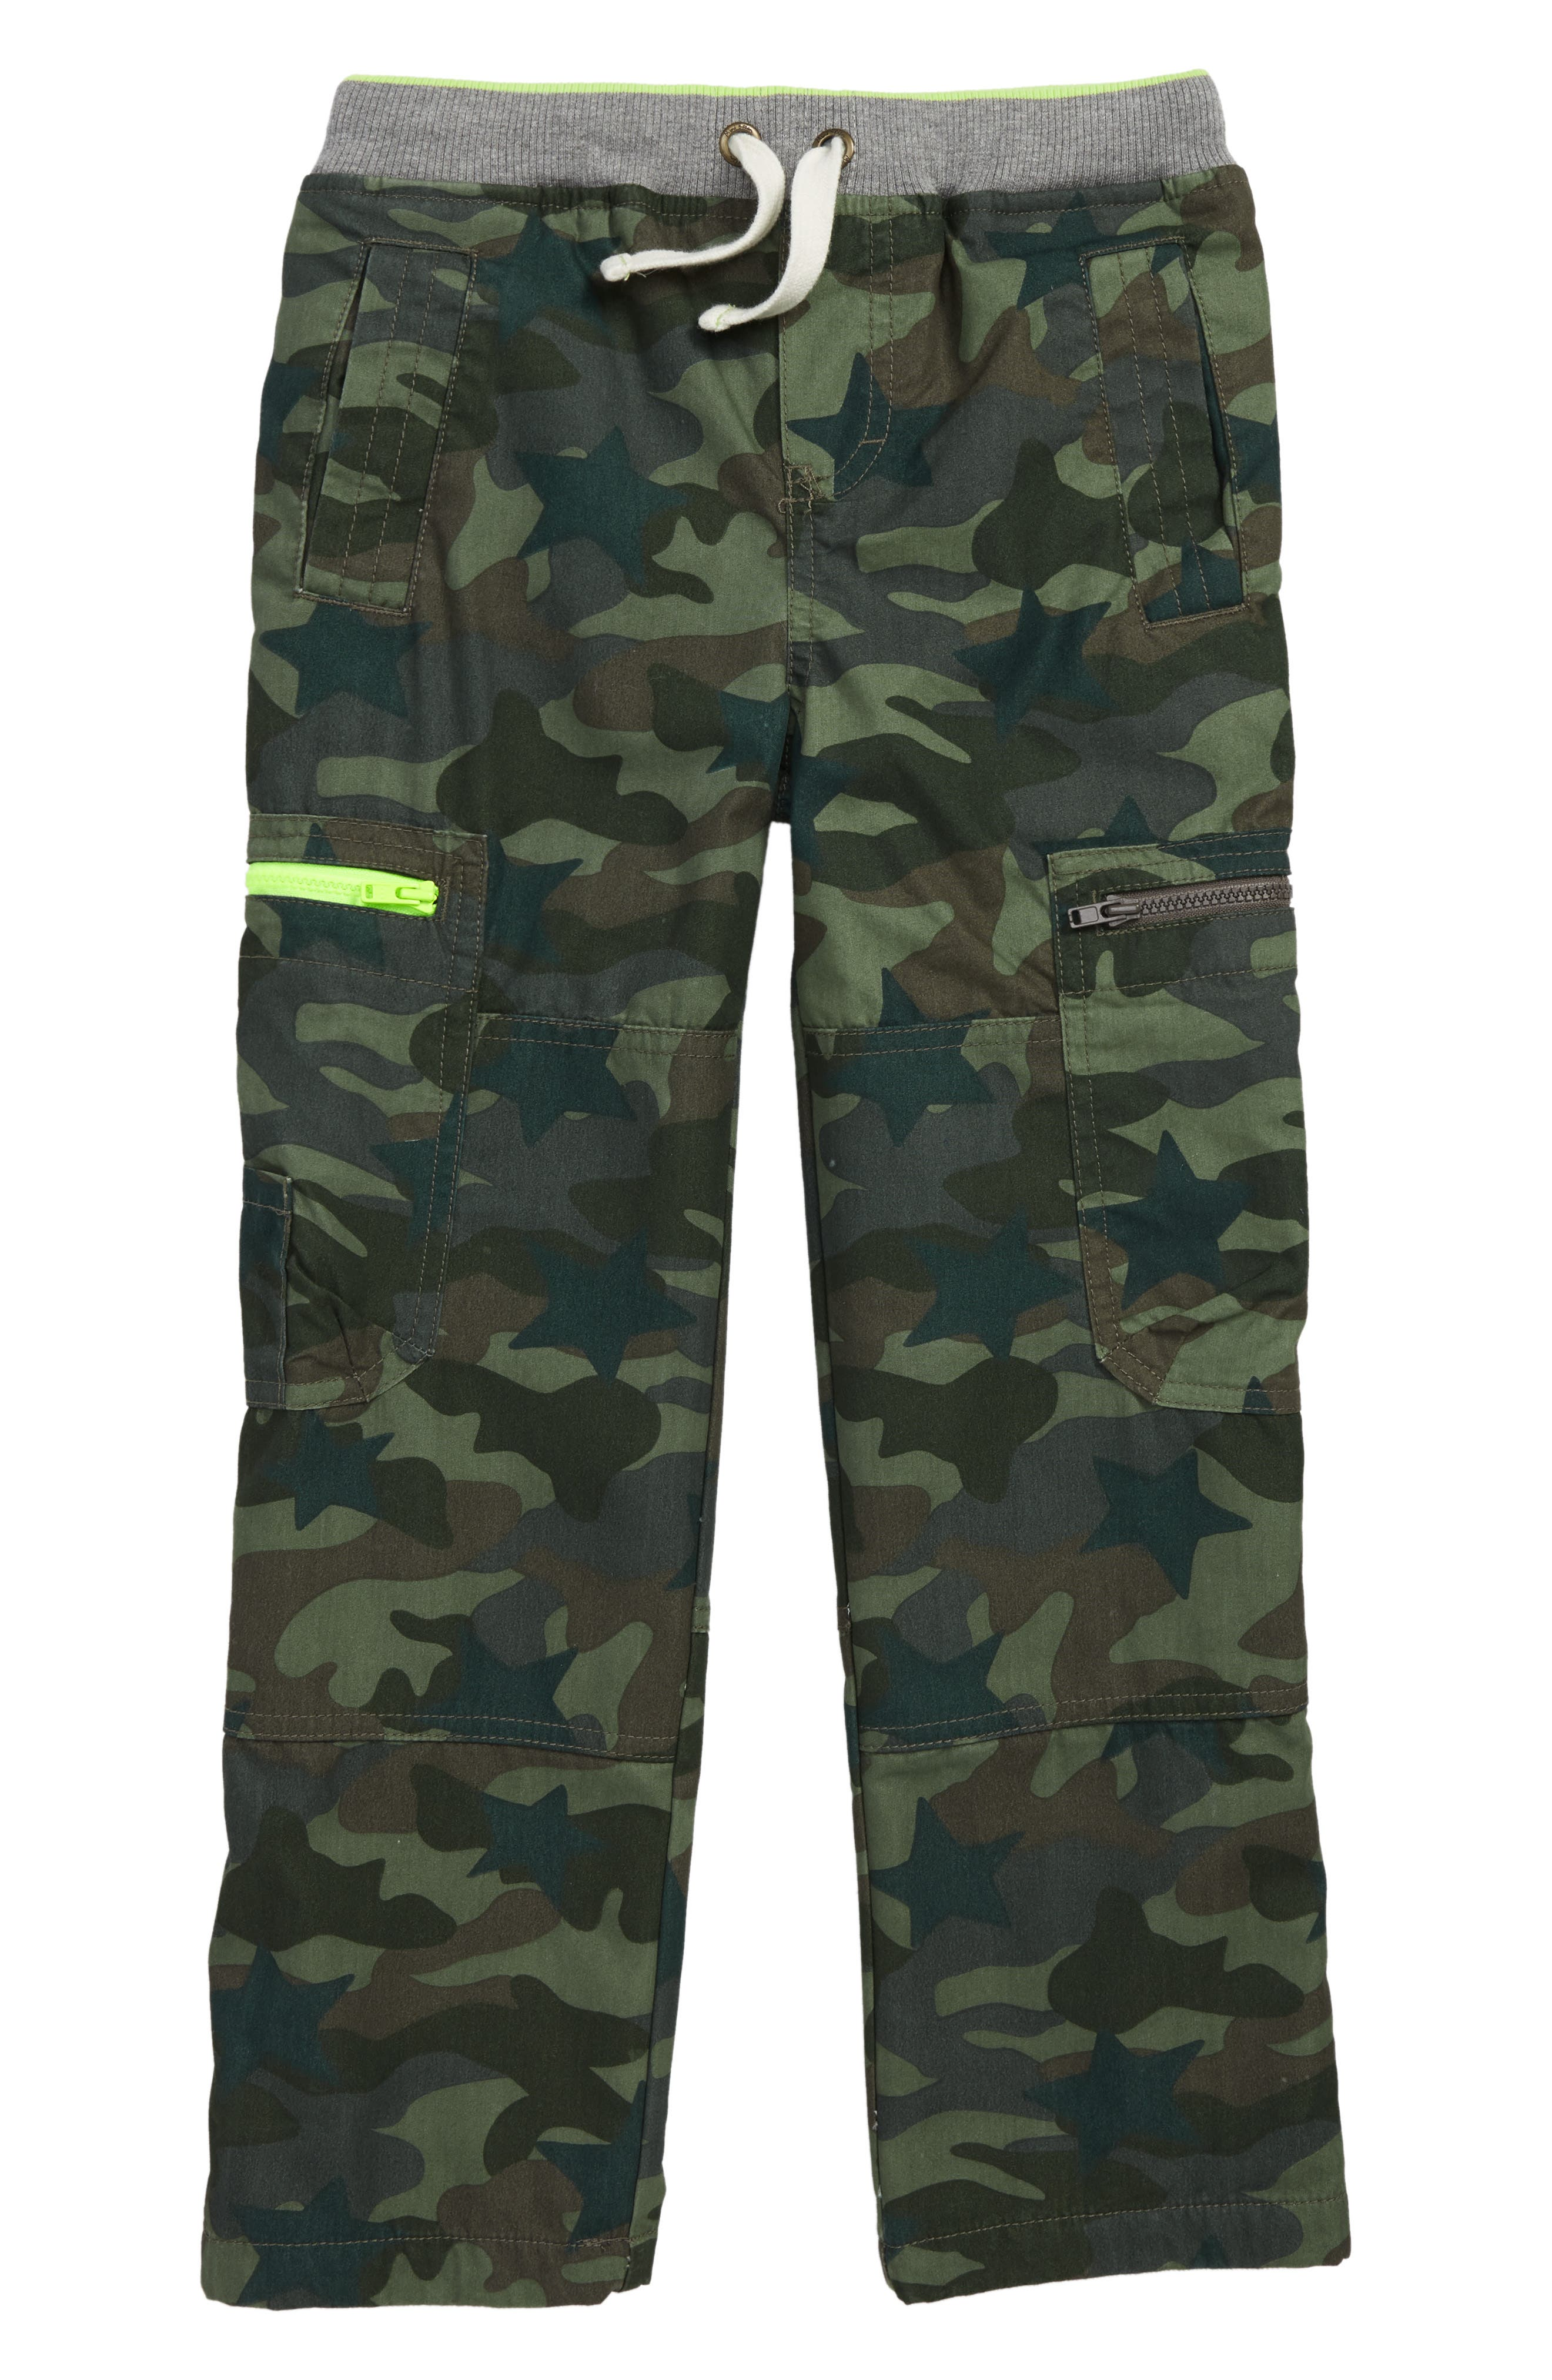 Cargo Pull On Pants,                             Main thumbnail 1, color,                             KHAKI GREEN CAMOFLAGE STAR